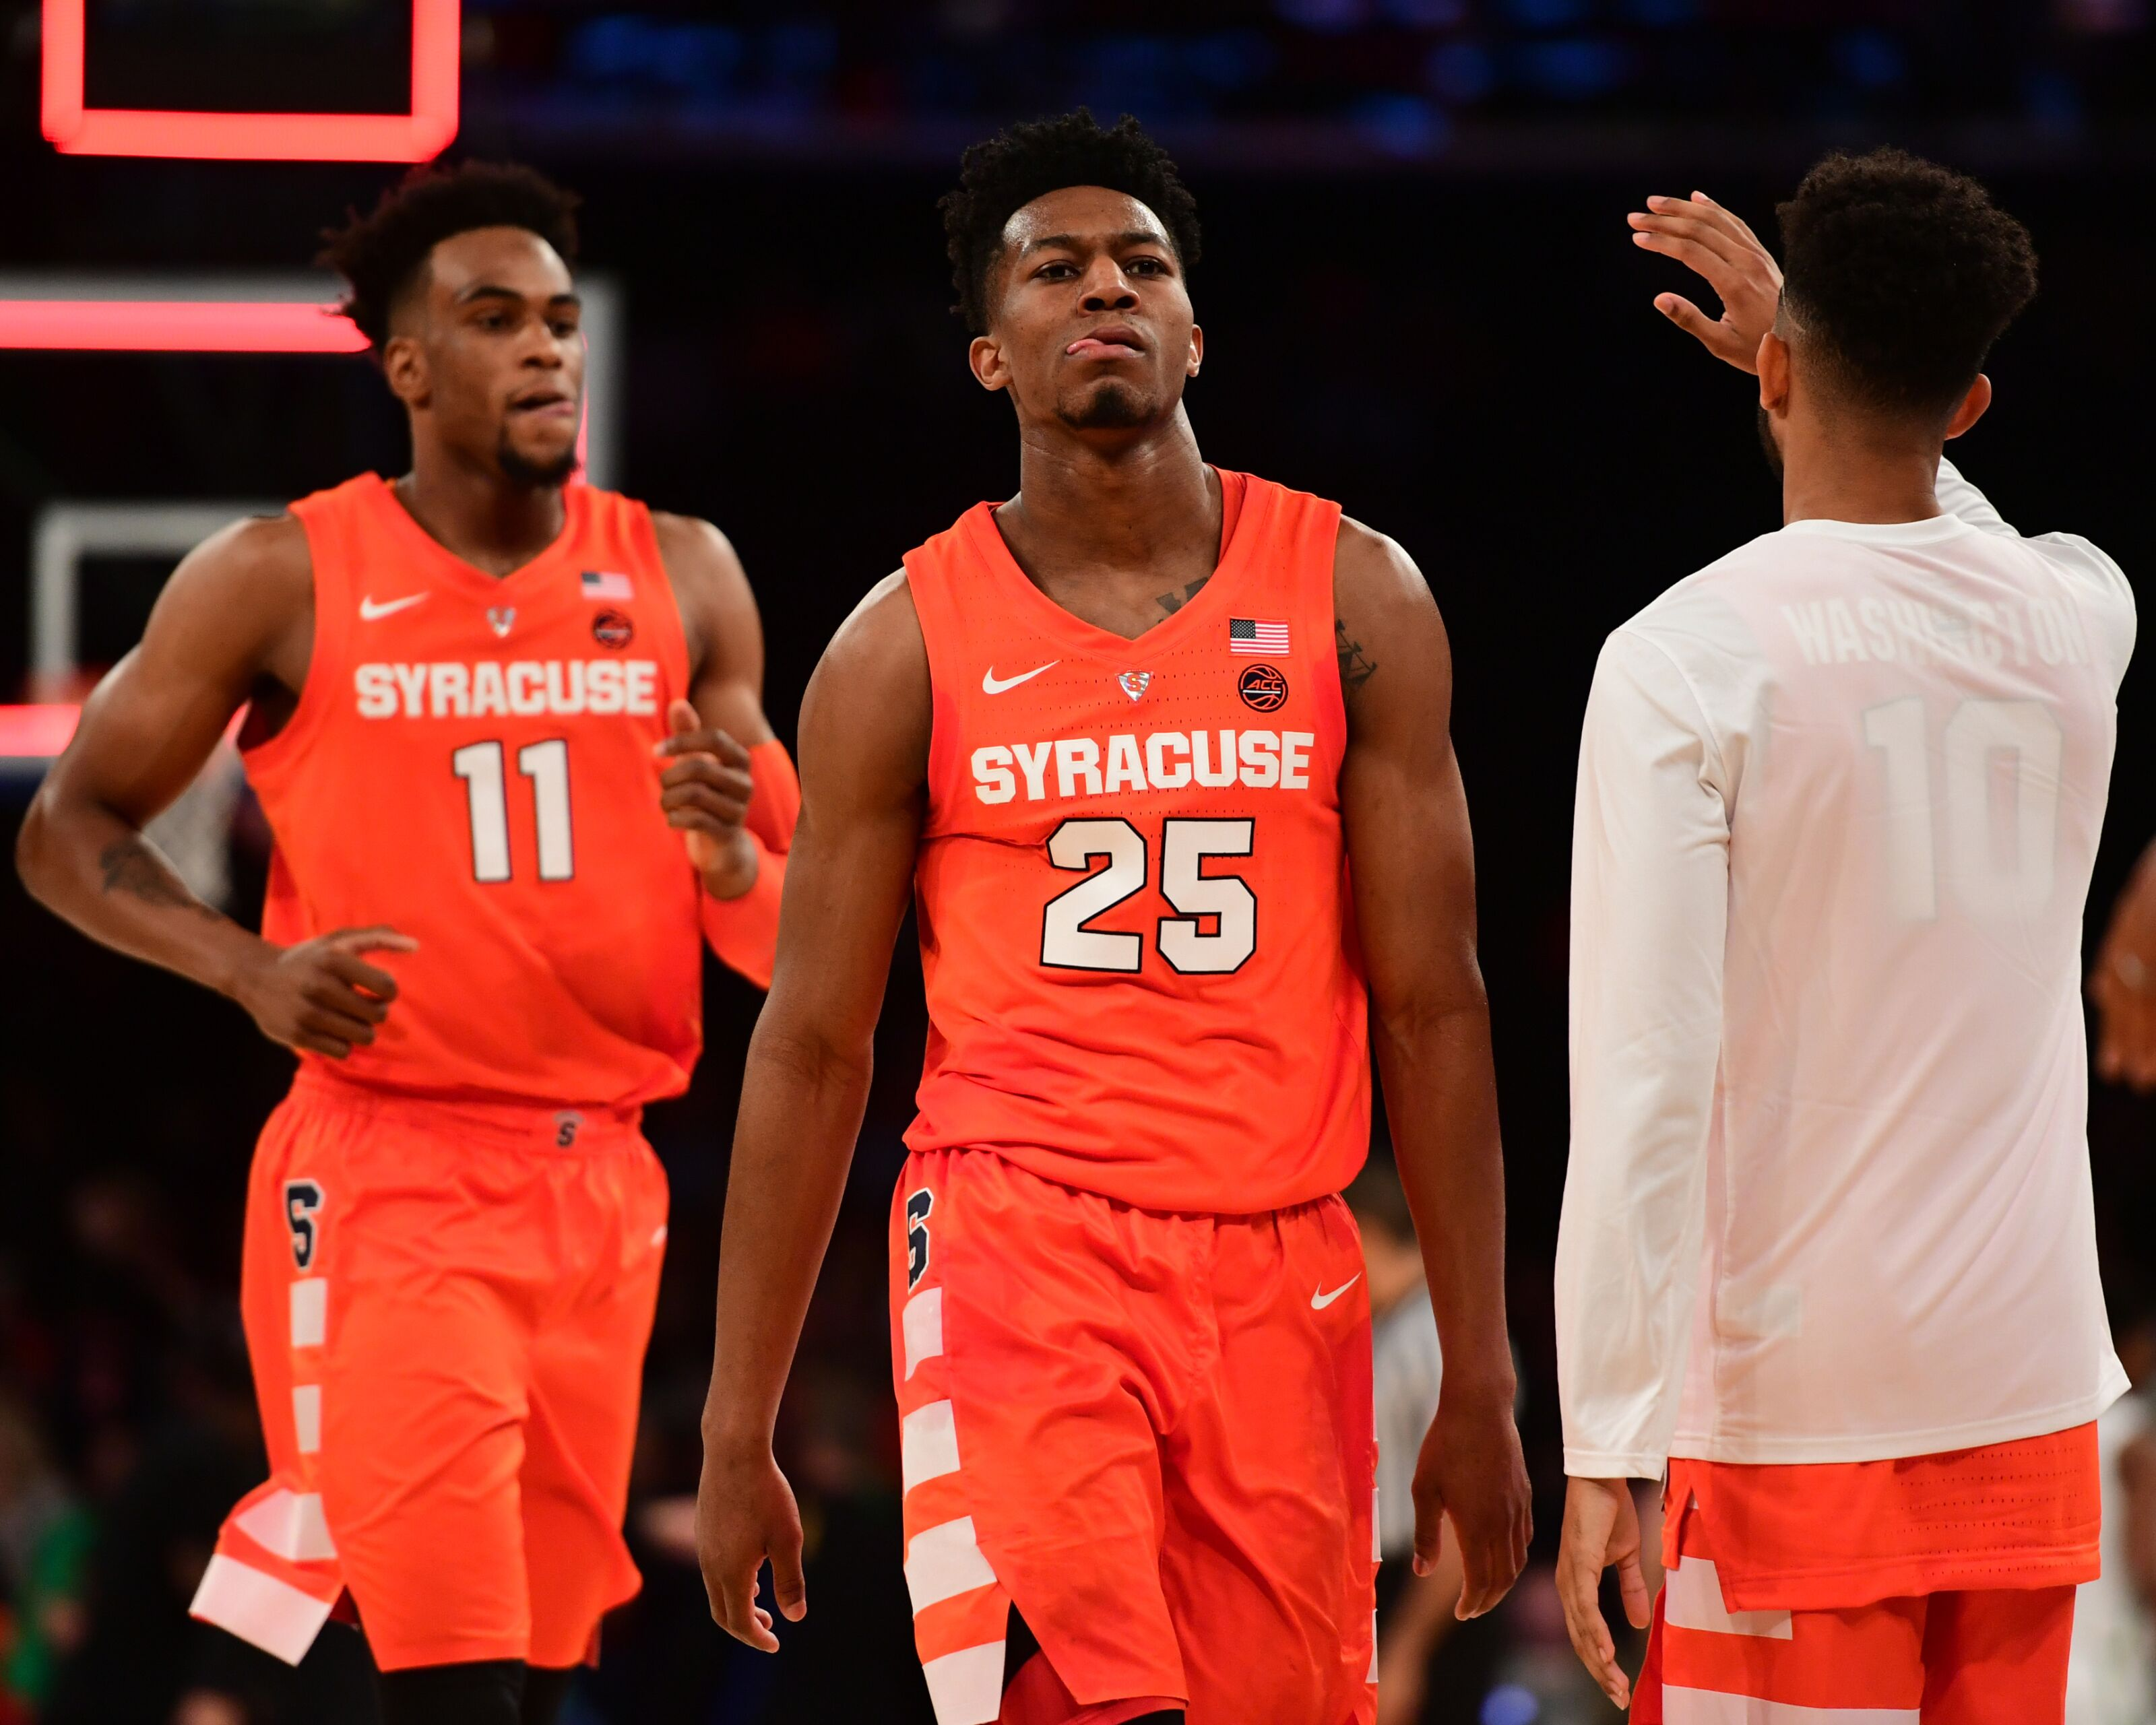 Ncaa Basketball Recruiting Breaking Down The Final 5 Teams For 2019